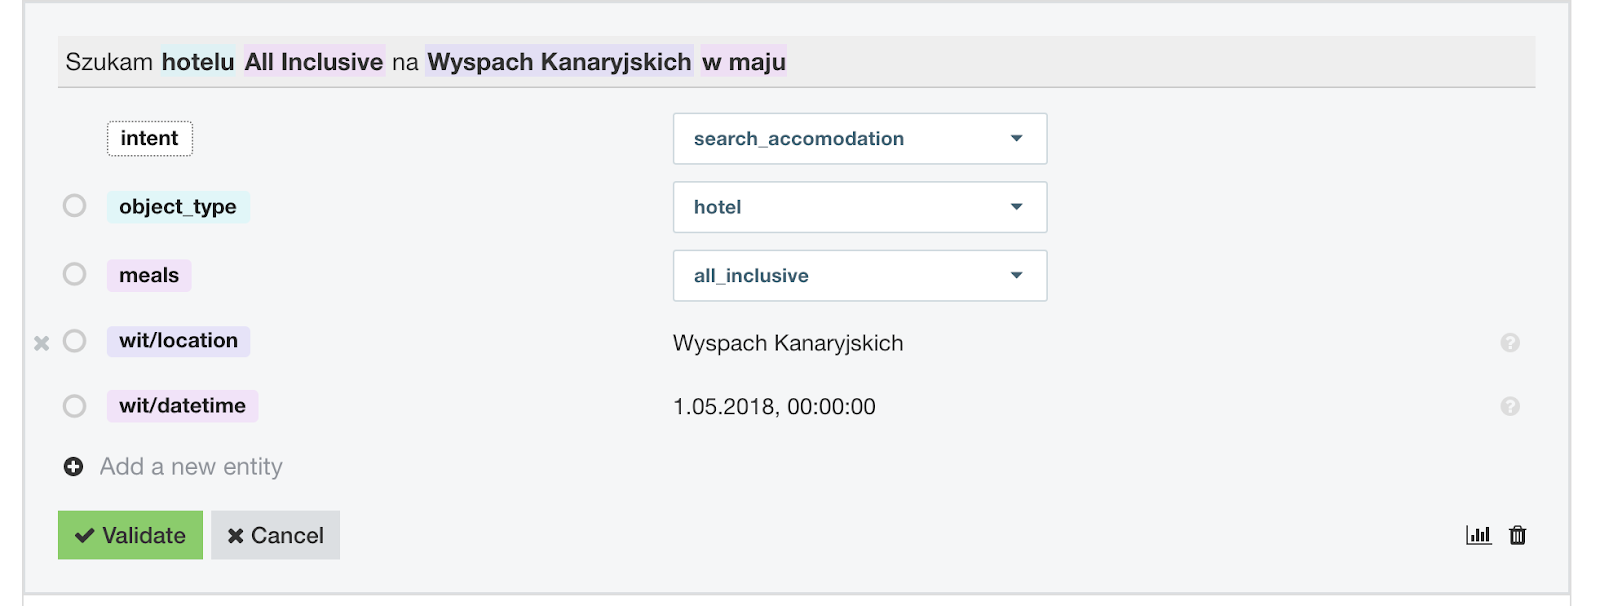 Testing with more detailed search intent.